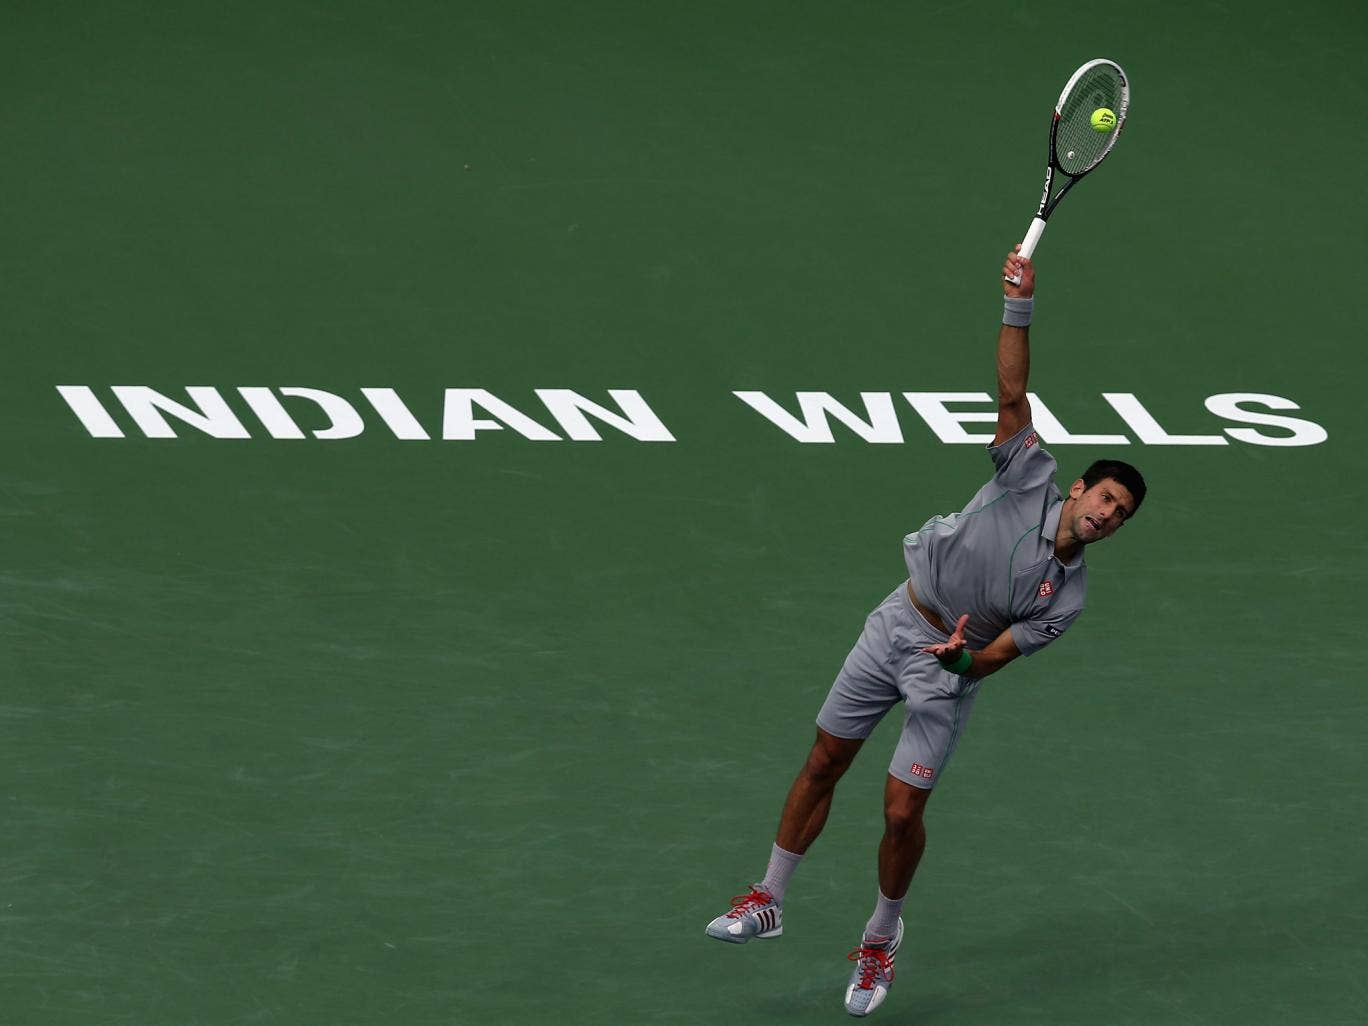 Novak Djokovic of Serbia serves to Alejandro Gonzalez of Colombia during the BNP Paribas Open at Indian Wells